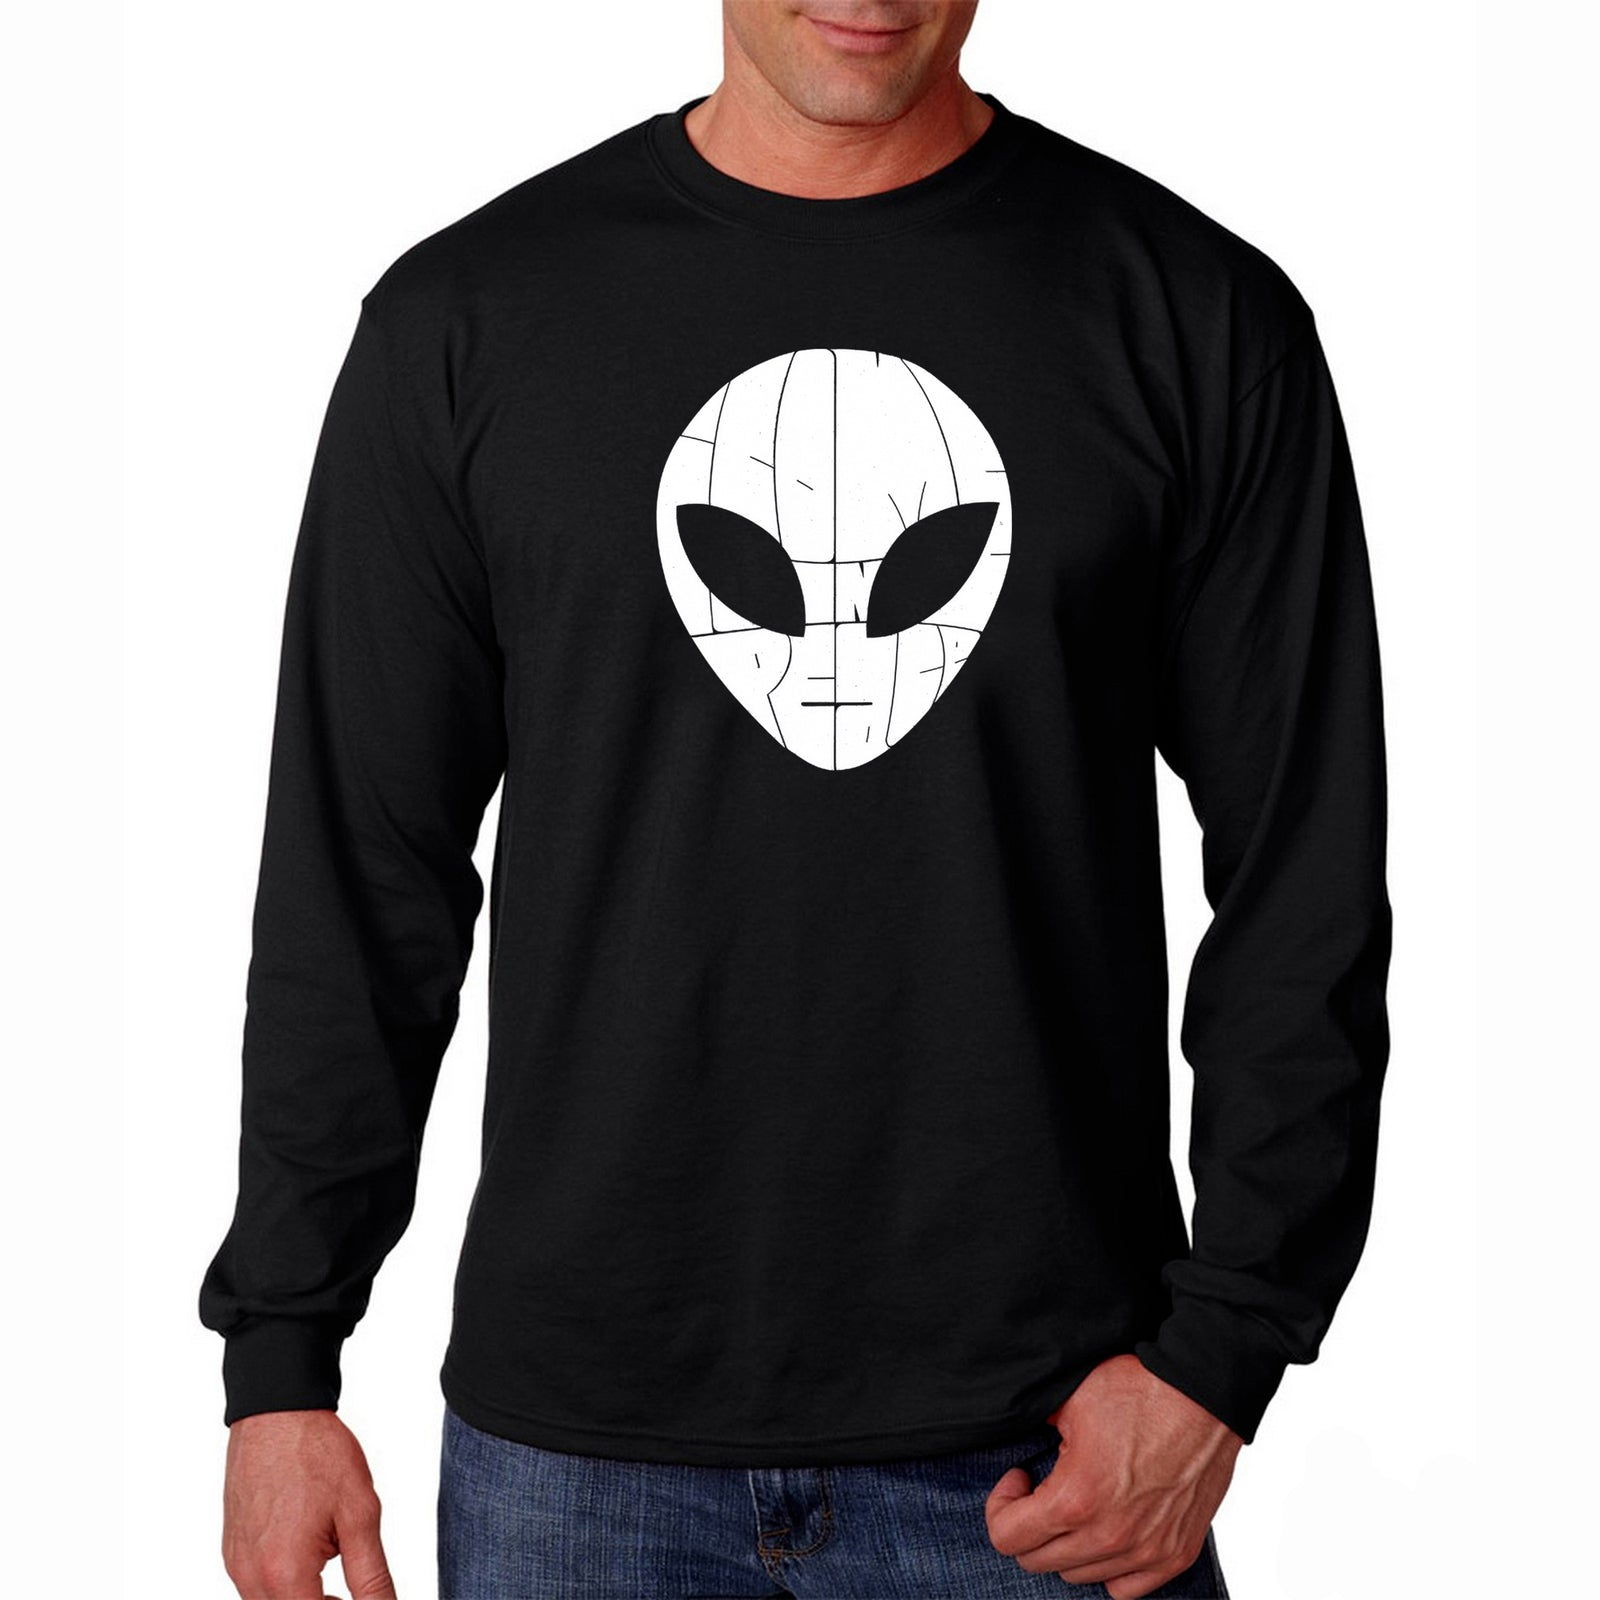 Men's Long Sleeve T-shirt - I COME IN PEACE